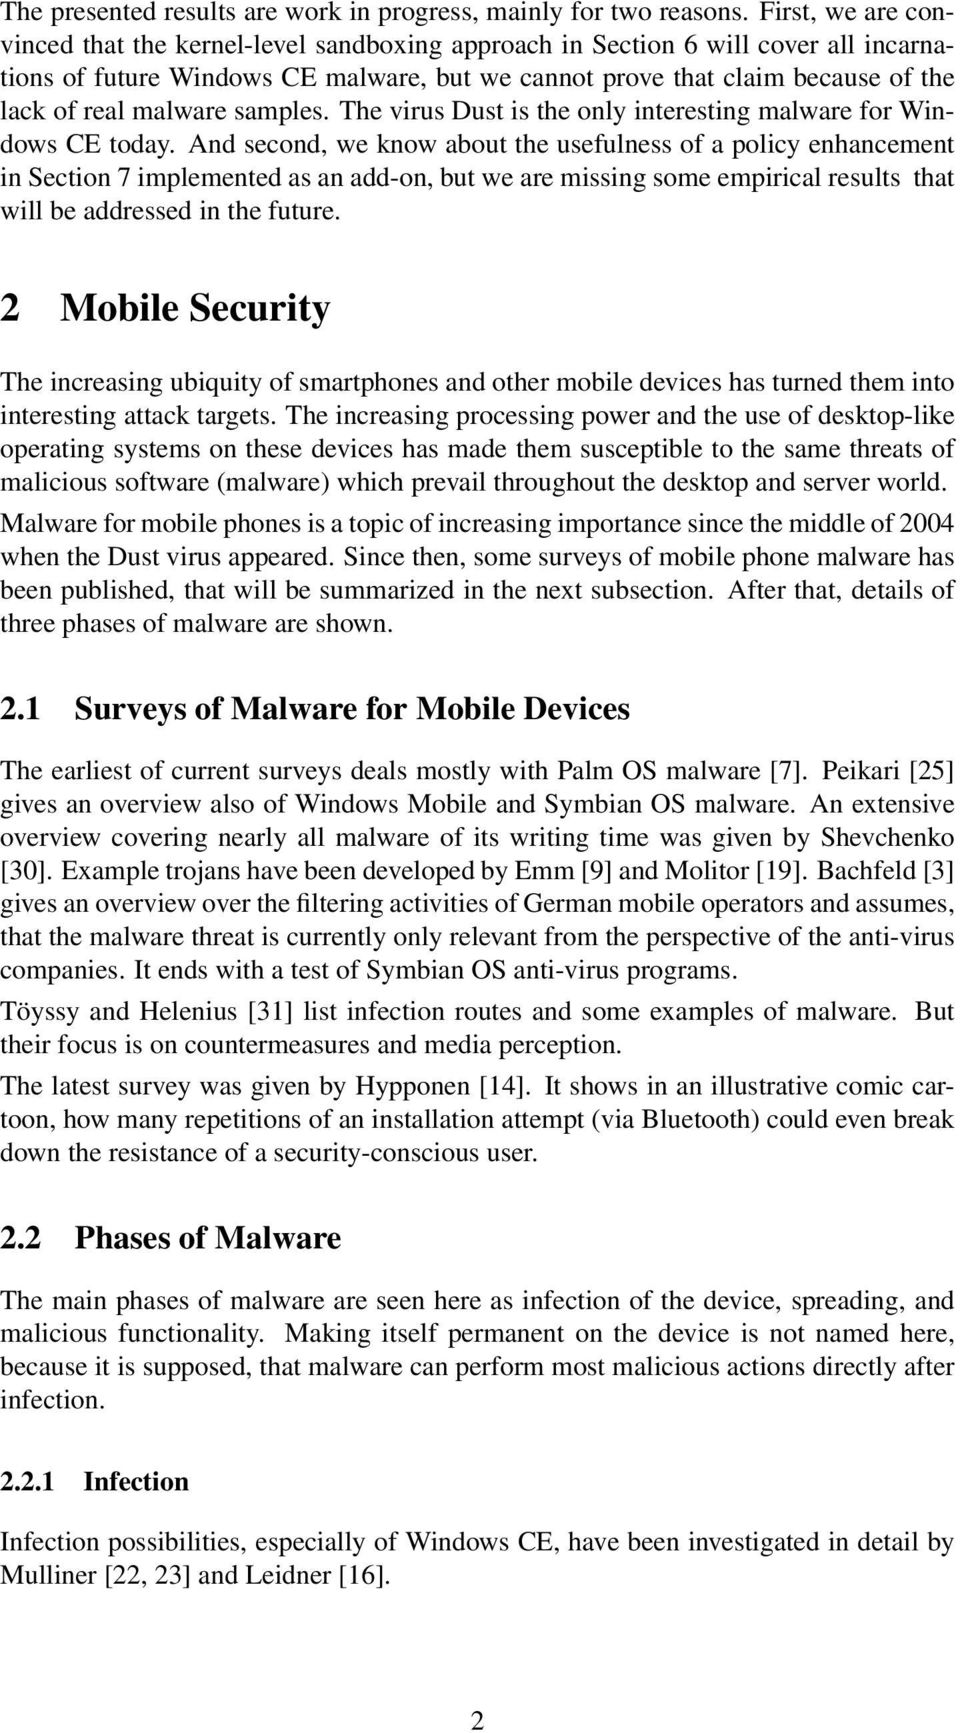 malware samples. The virus Dust is the only interesting malware for Windows CE today.